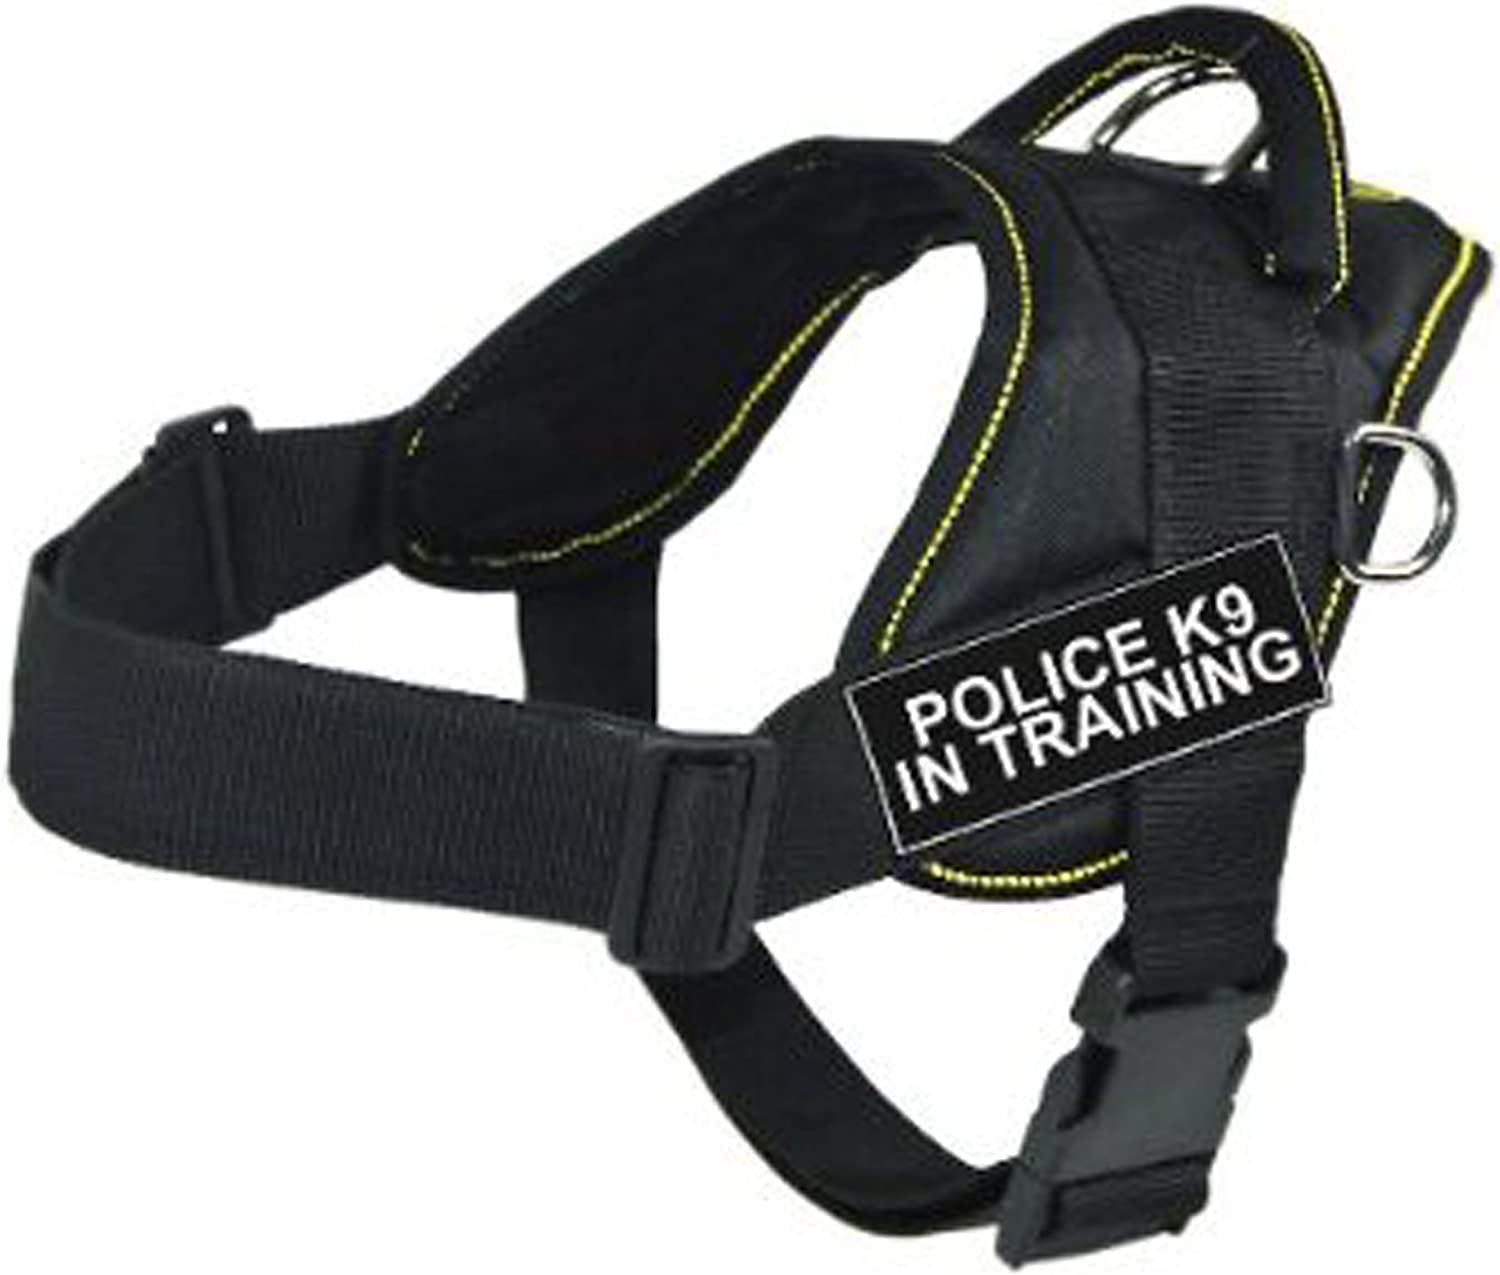 Dean & Tyler Fun Works Harness, Police K9 In Training, Black with Yellow Trim, Large, Fits Girth Size  32Inch to 42Inch